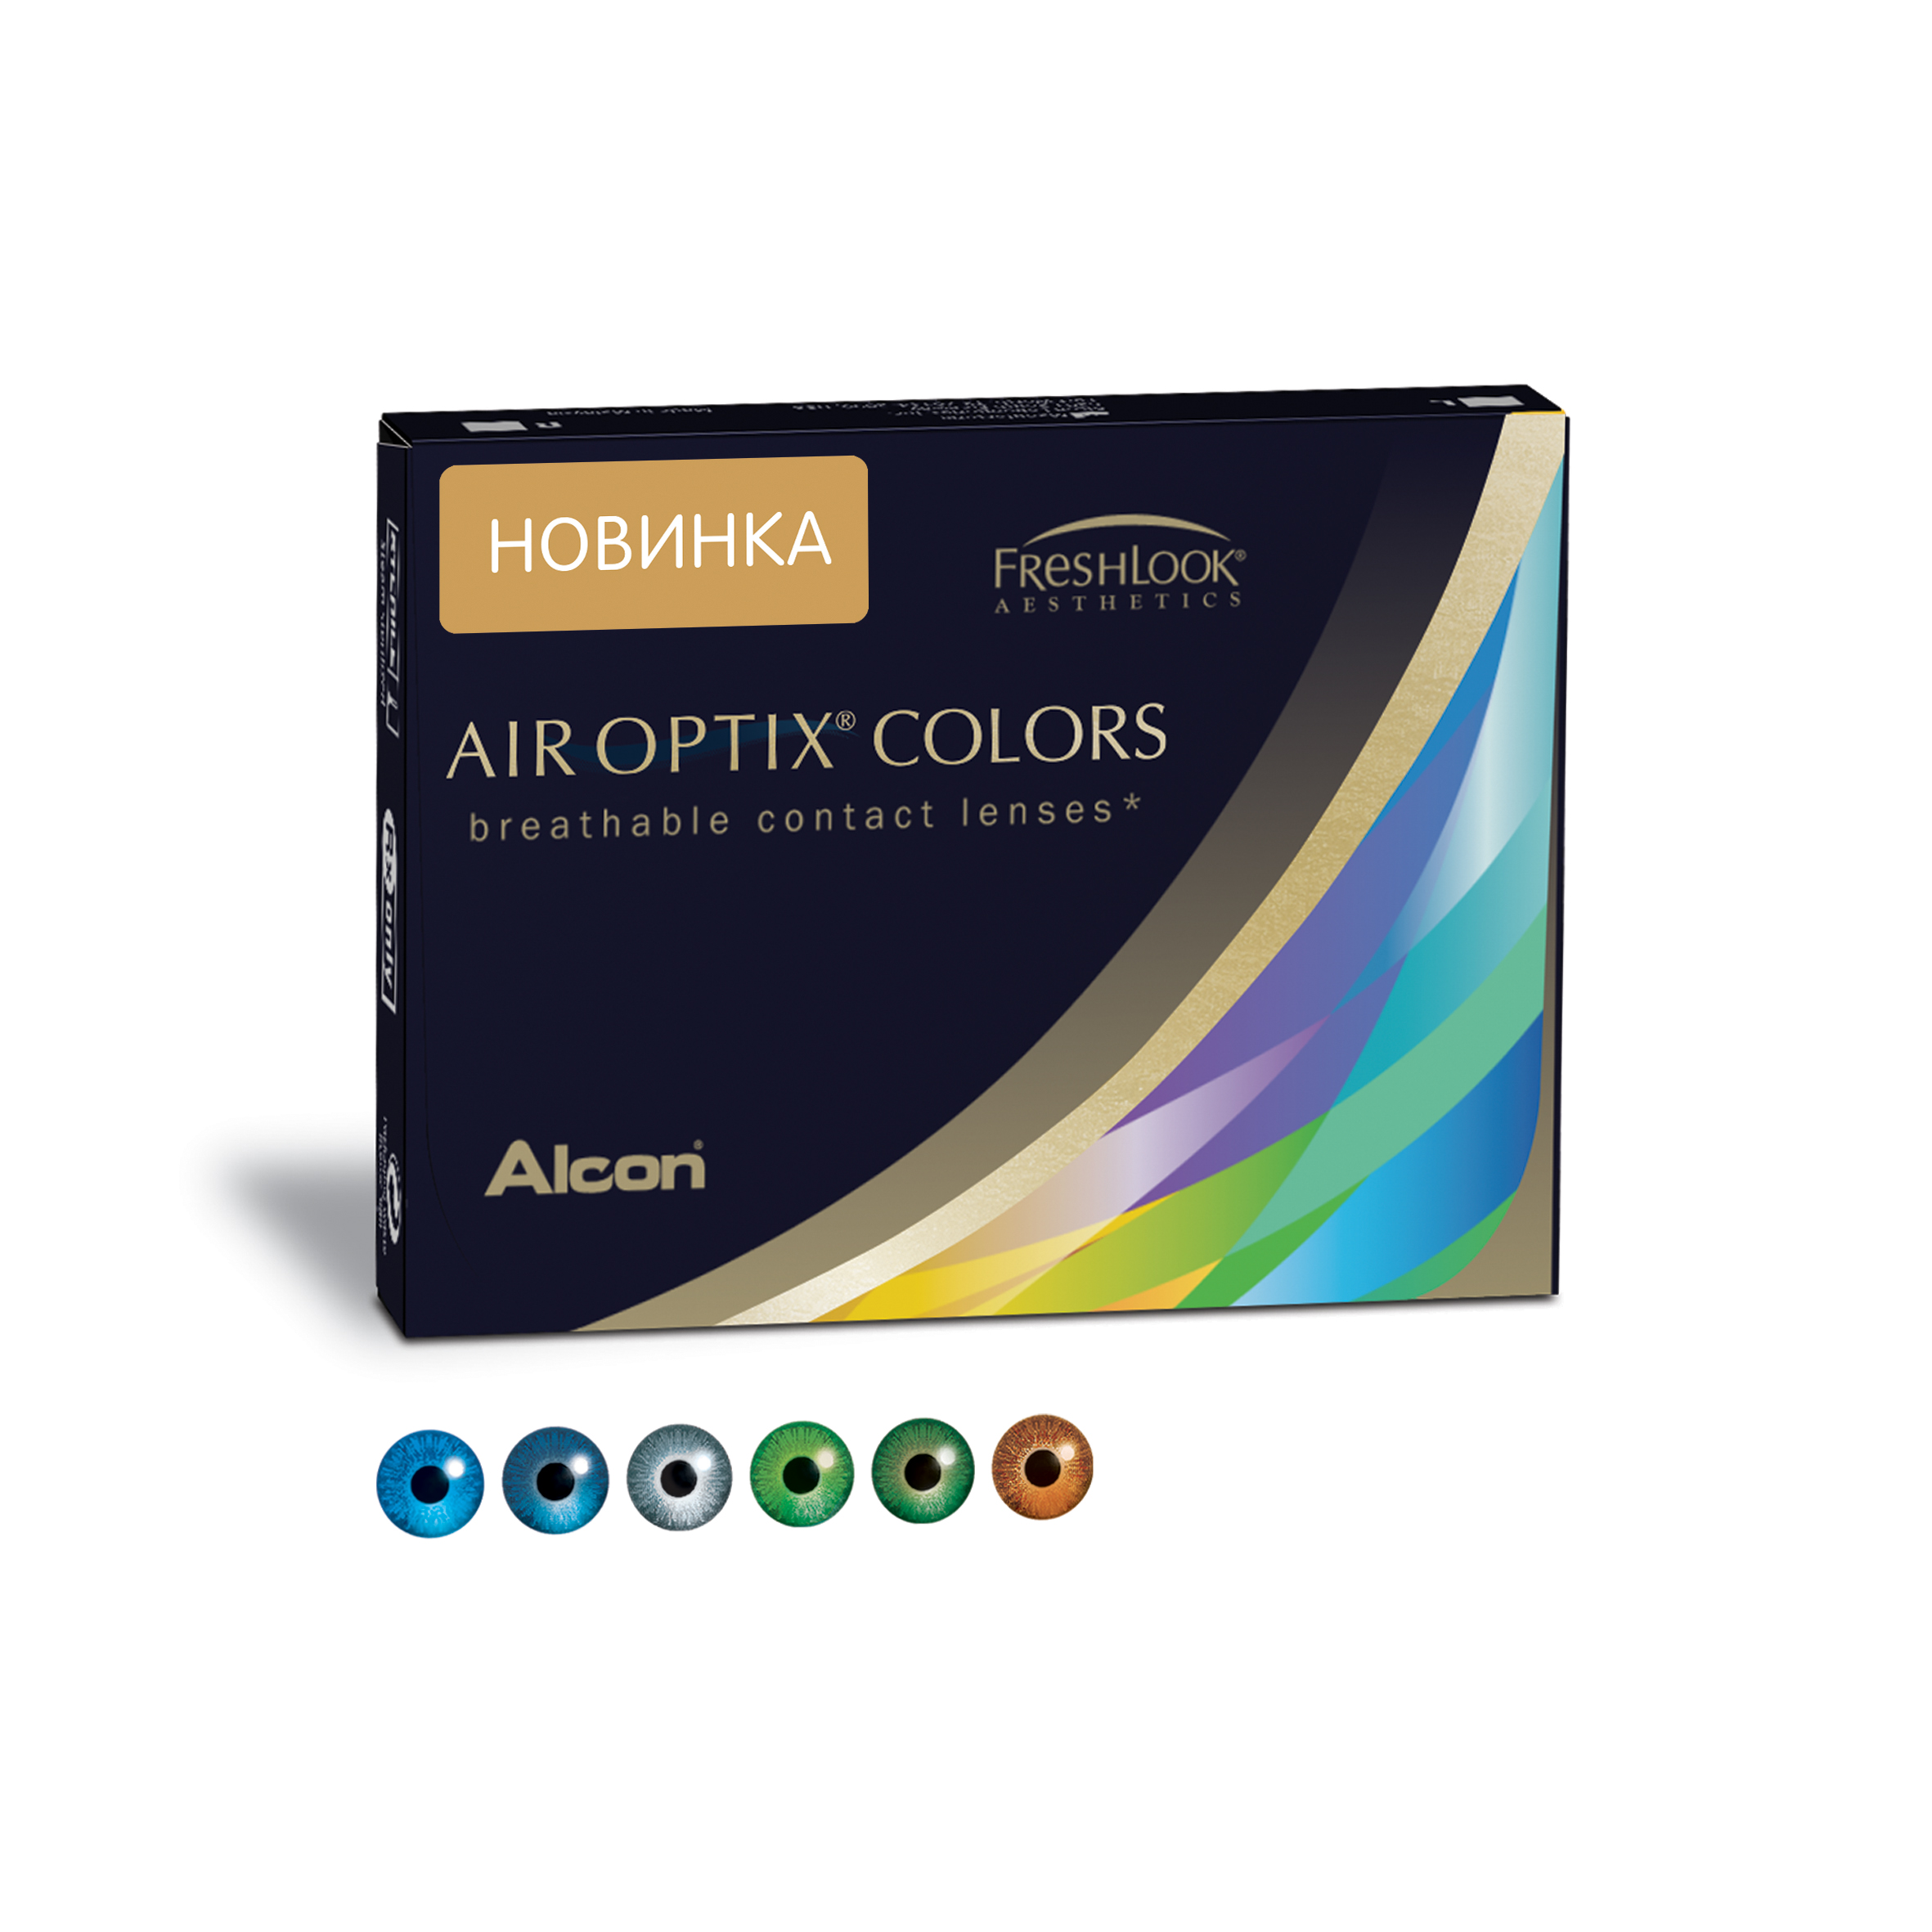 Аlcon контактные линзы Air Optix Colors 2 шт -4.75 Blue